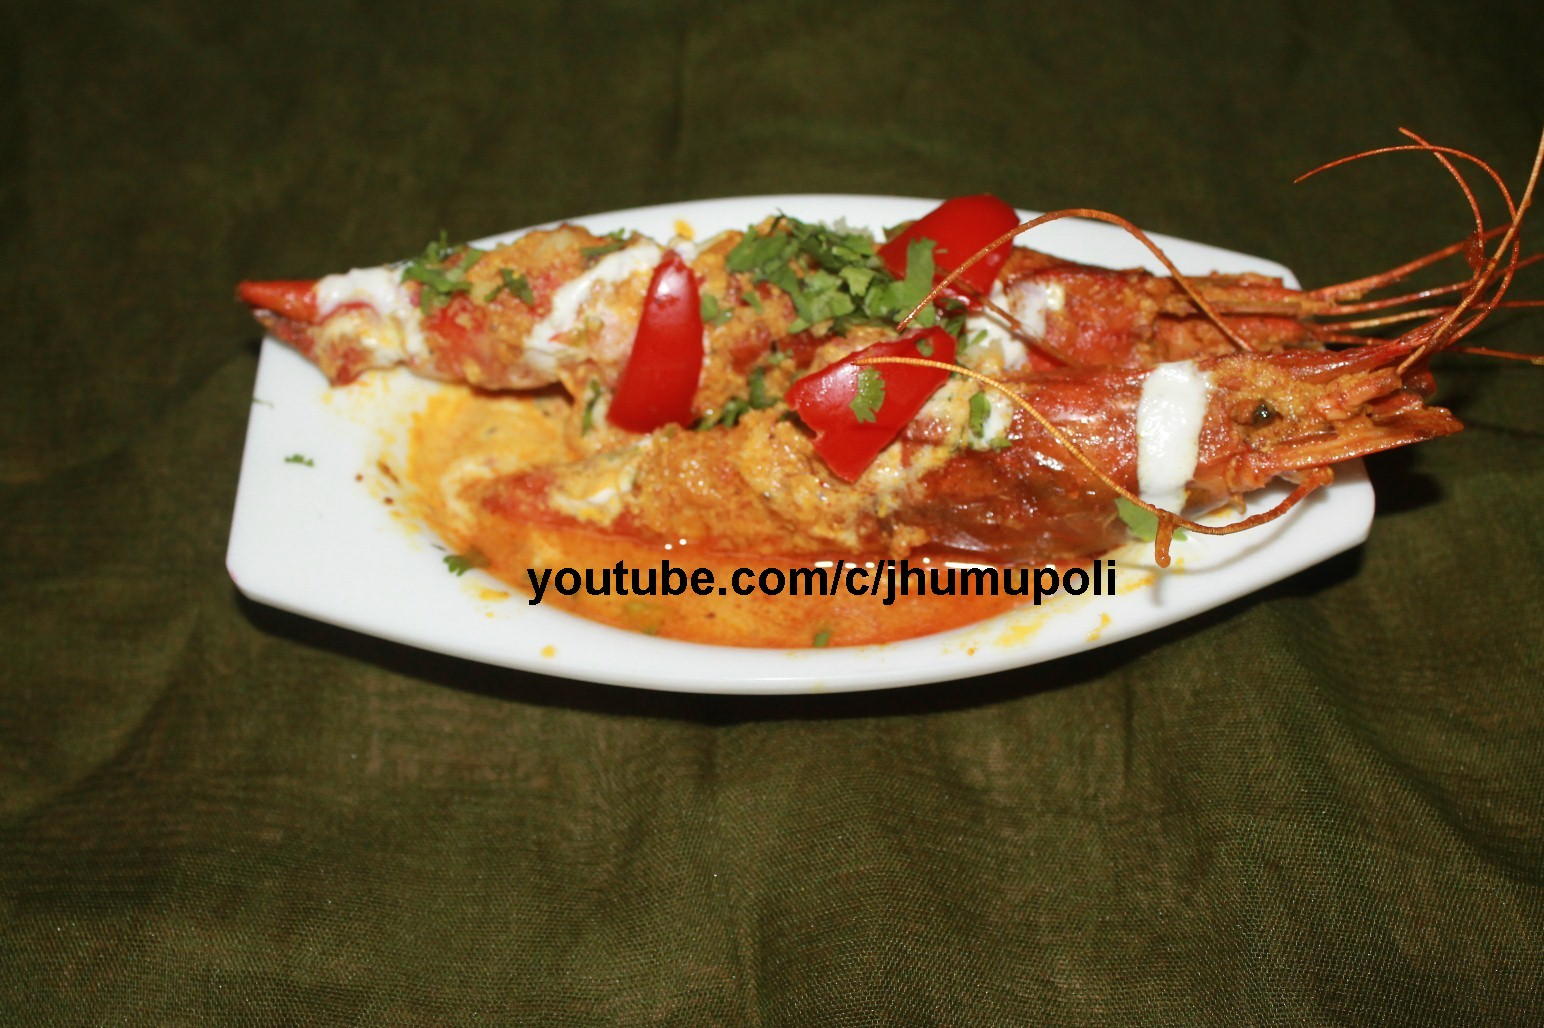 Poligrill famous bengali fish recipes one of the most popular bengali cuisines that the whole world relish such a delightful recipe that is quite easy to make is the main reason behind its forumfinder Image collections